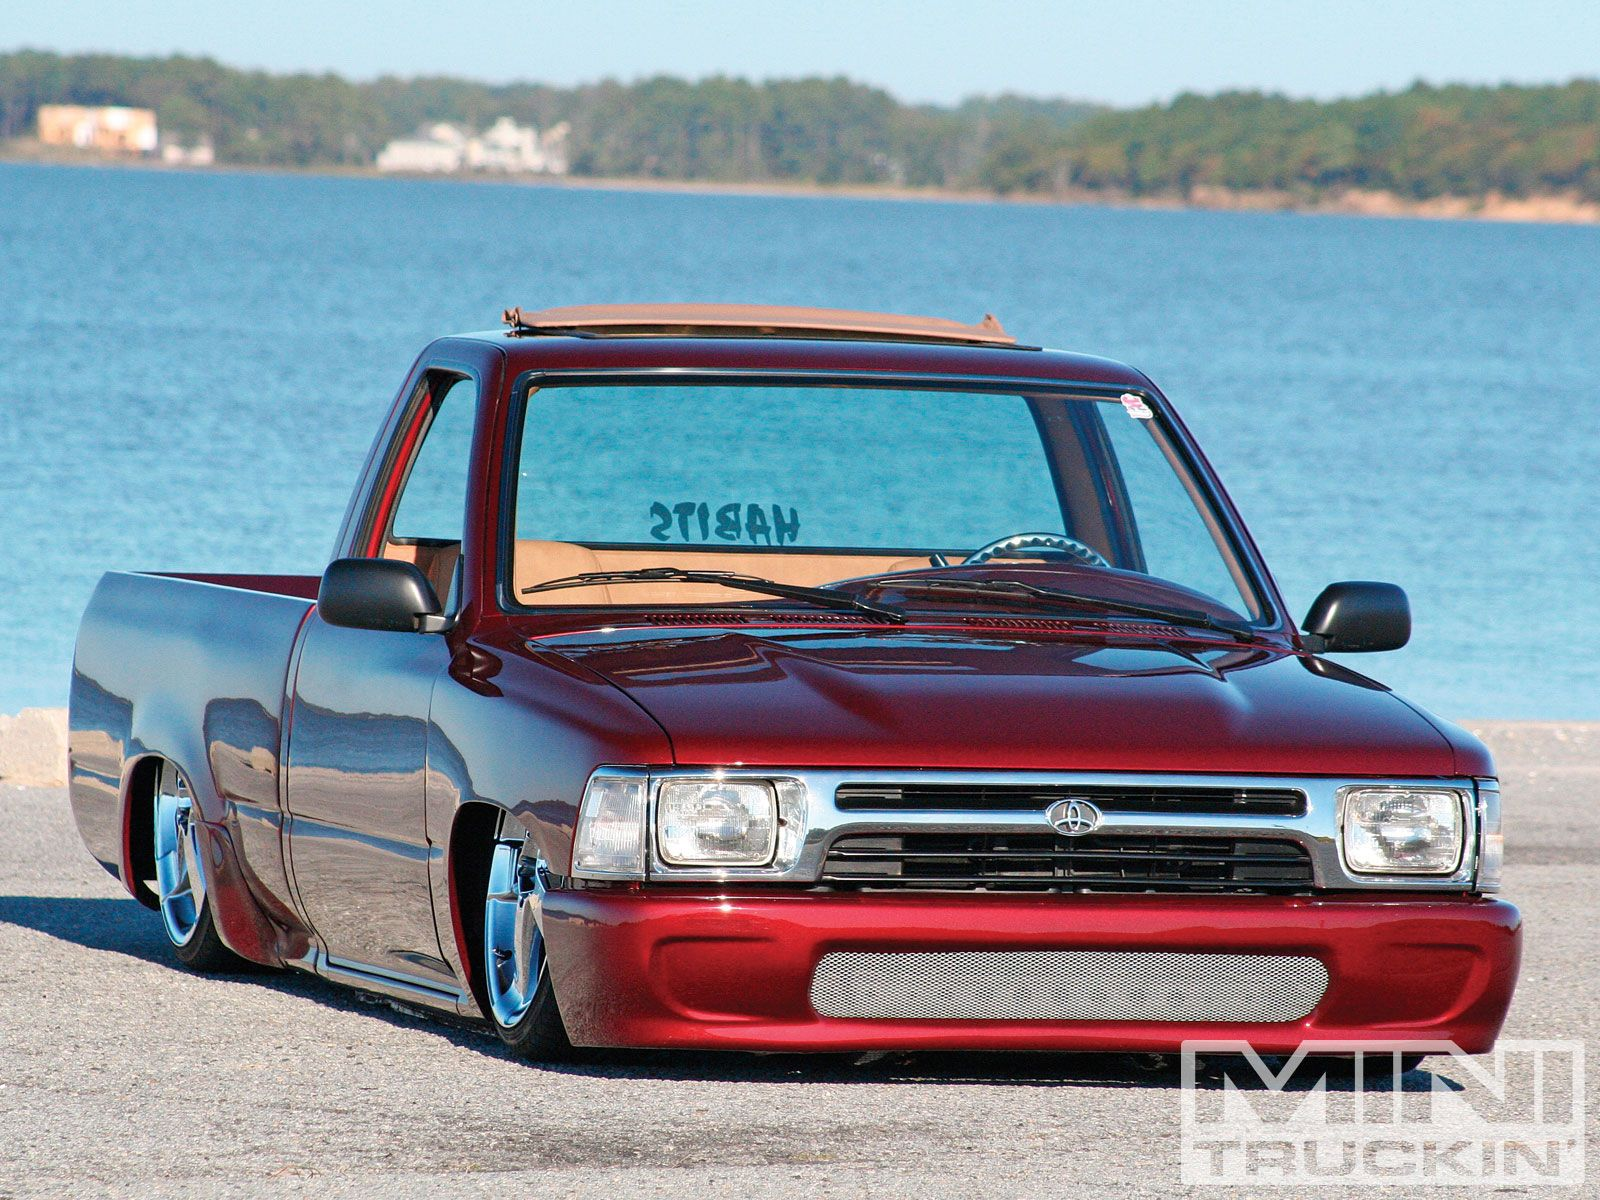 Tim Short Chevy >> Prestonsburg Used Vehicles For Sale | Autos Post